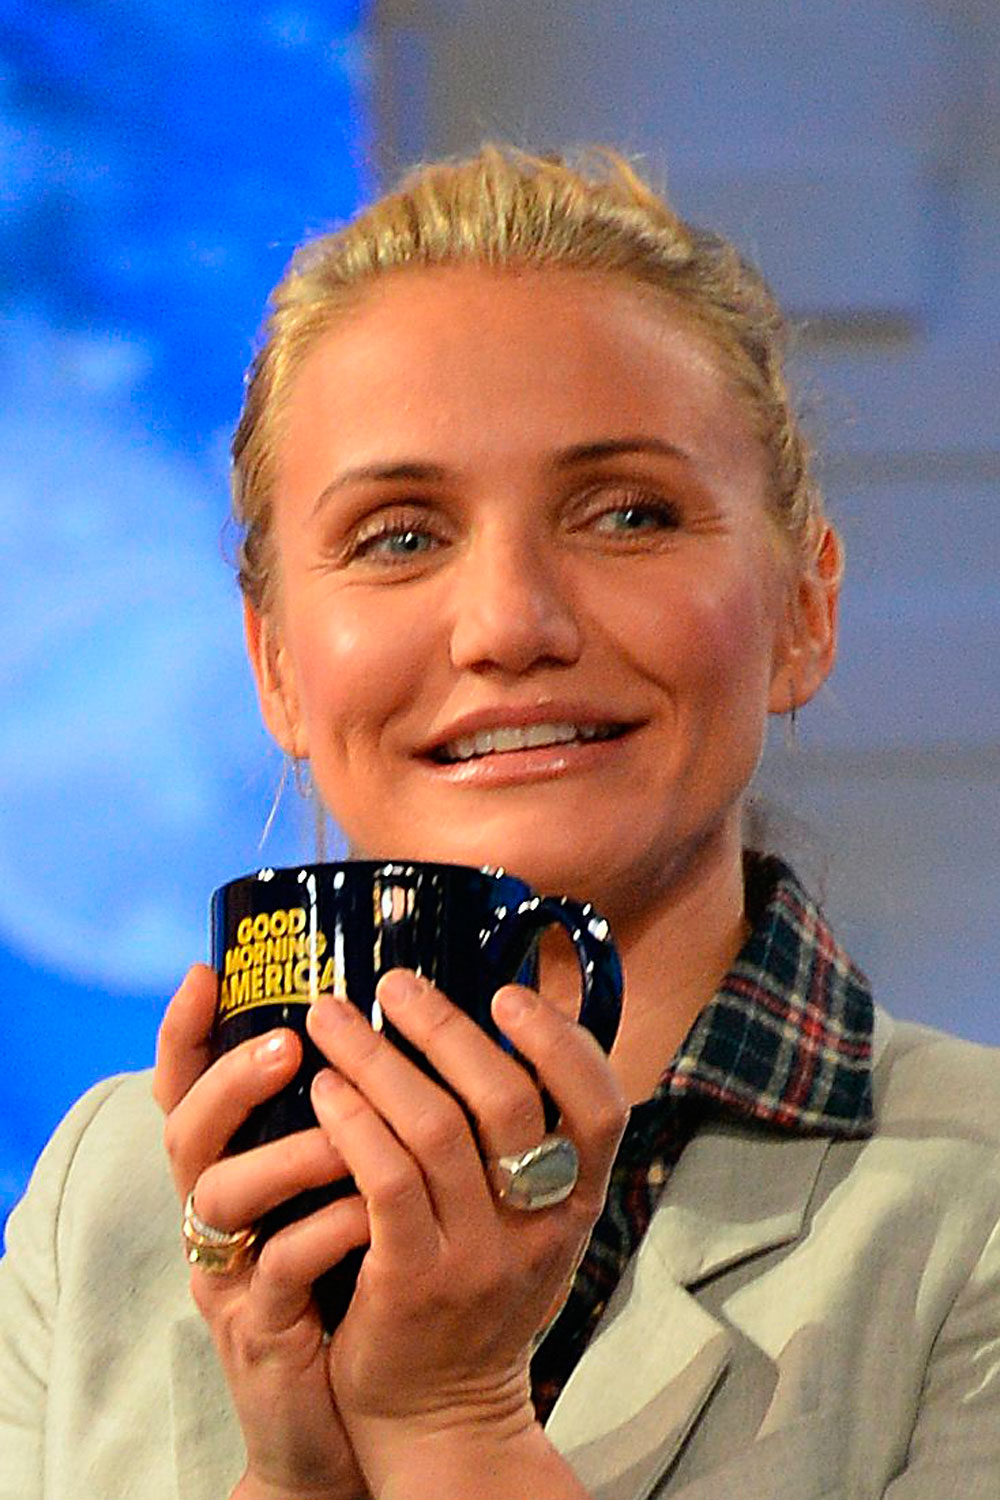 Cameron Diaz health and beauty tips secrets